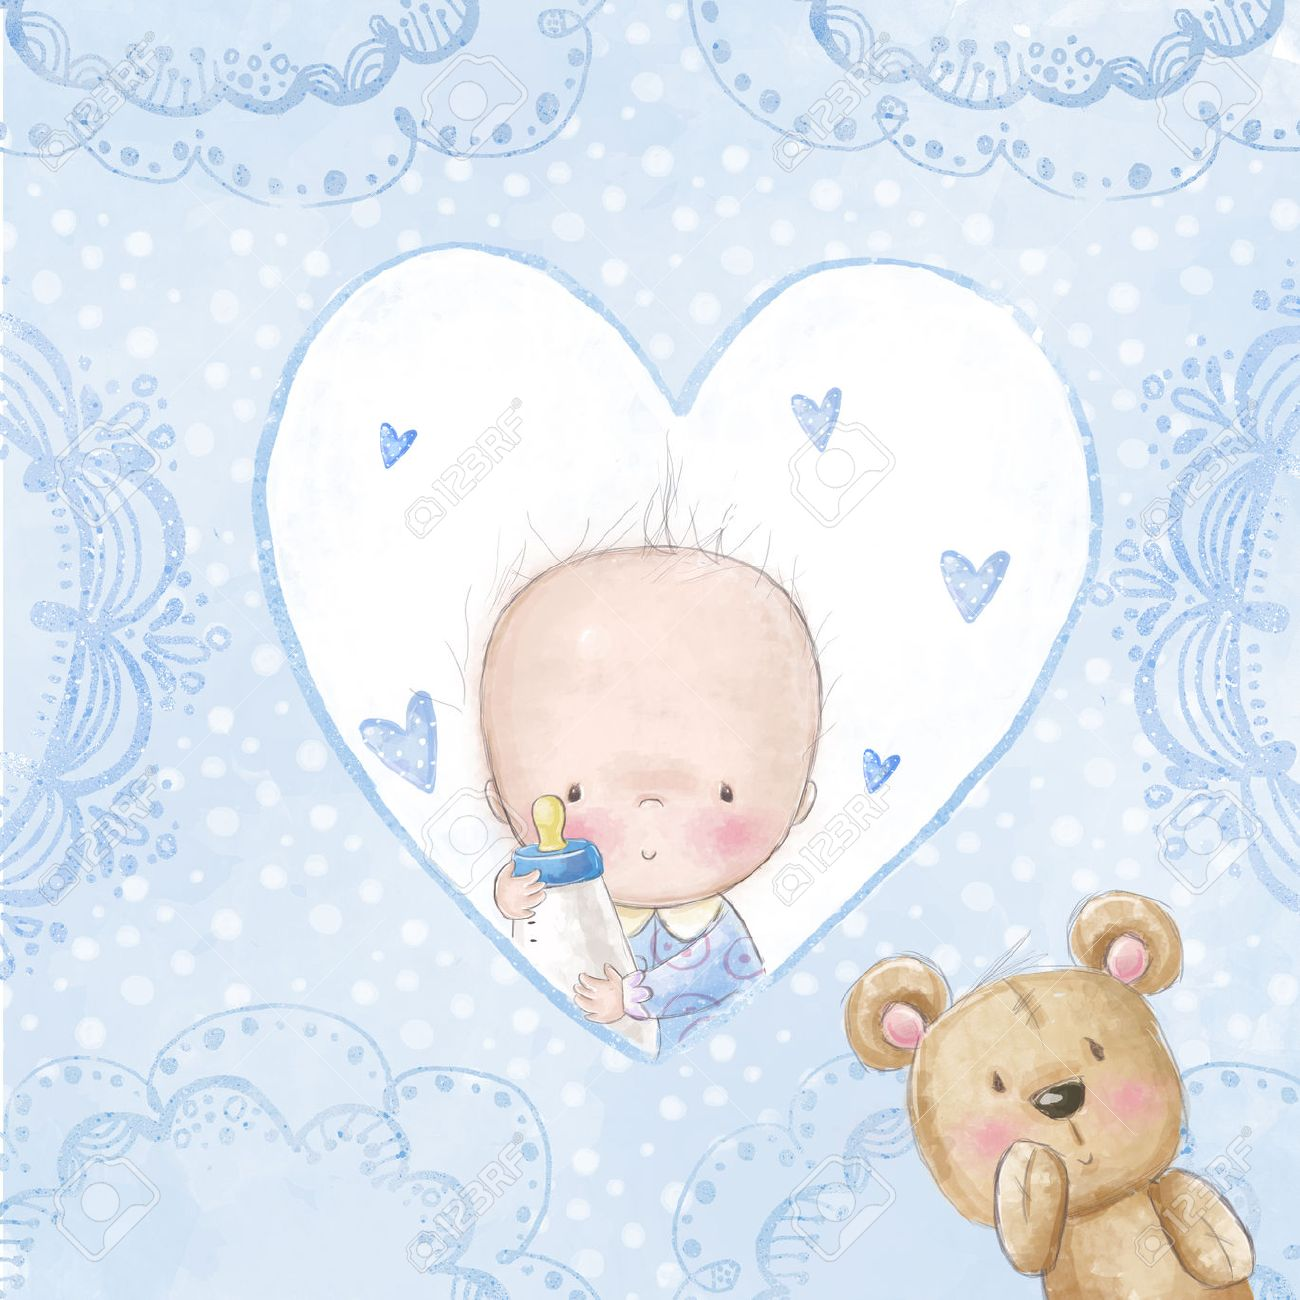 Baby shower greeting cardby boy with teddylove background baby shower greeting cardby boy with teddylove background for childrenptism m4hsunfo